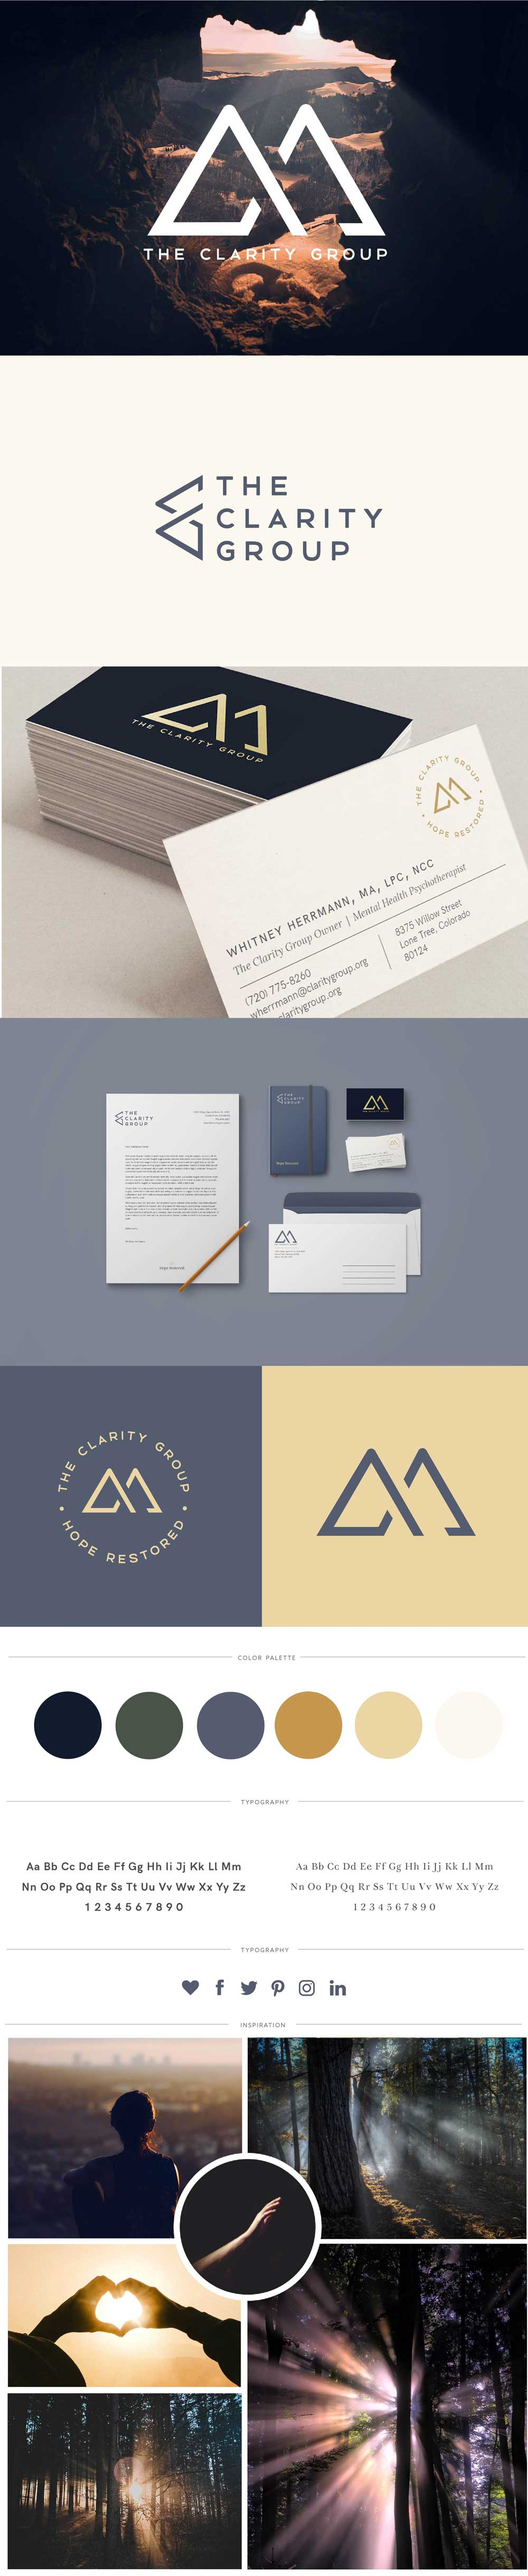 The Clarity Group Brandboard. Design and branding done by Callie Cullum Design.